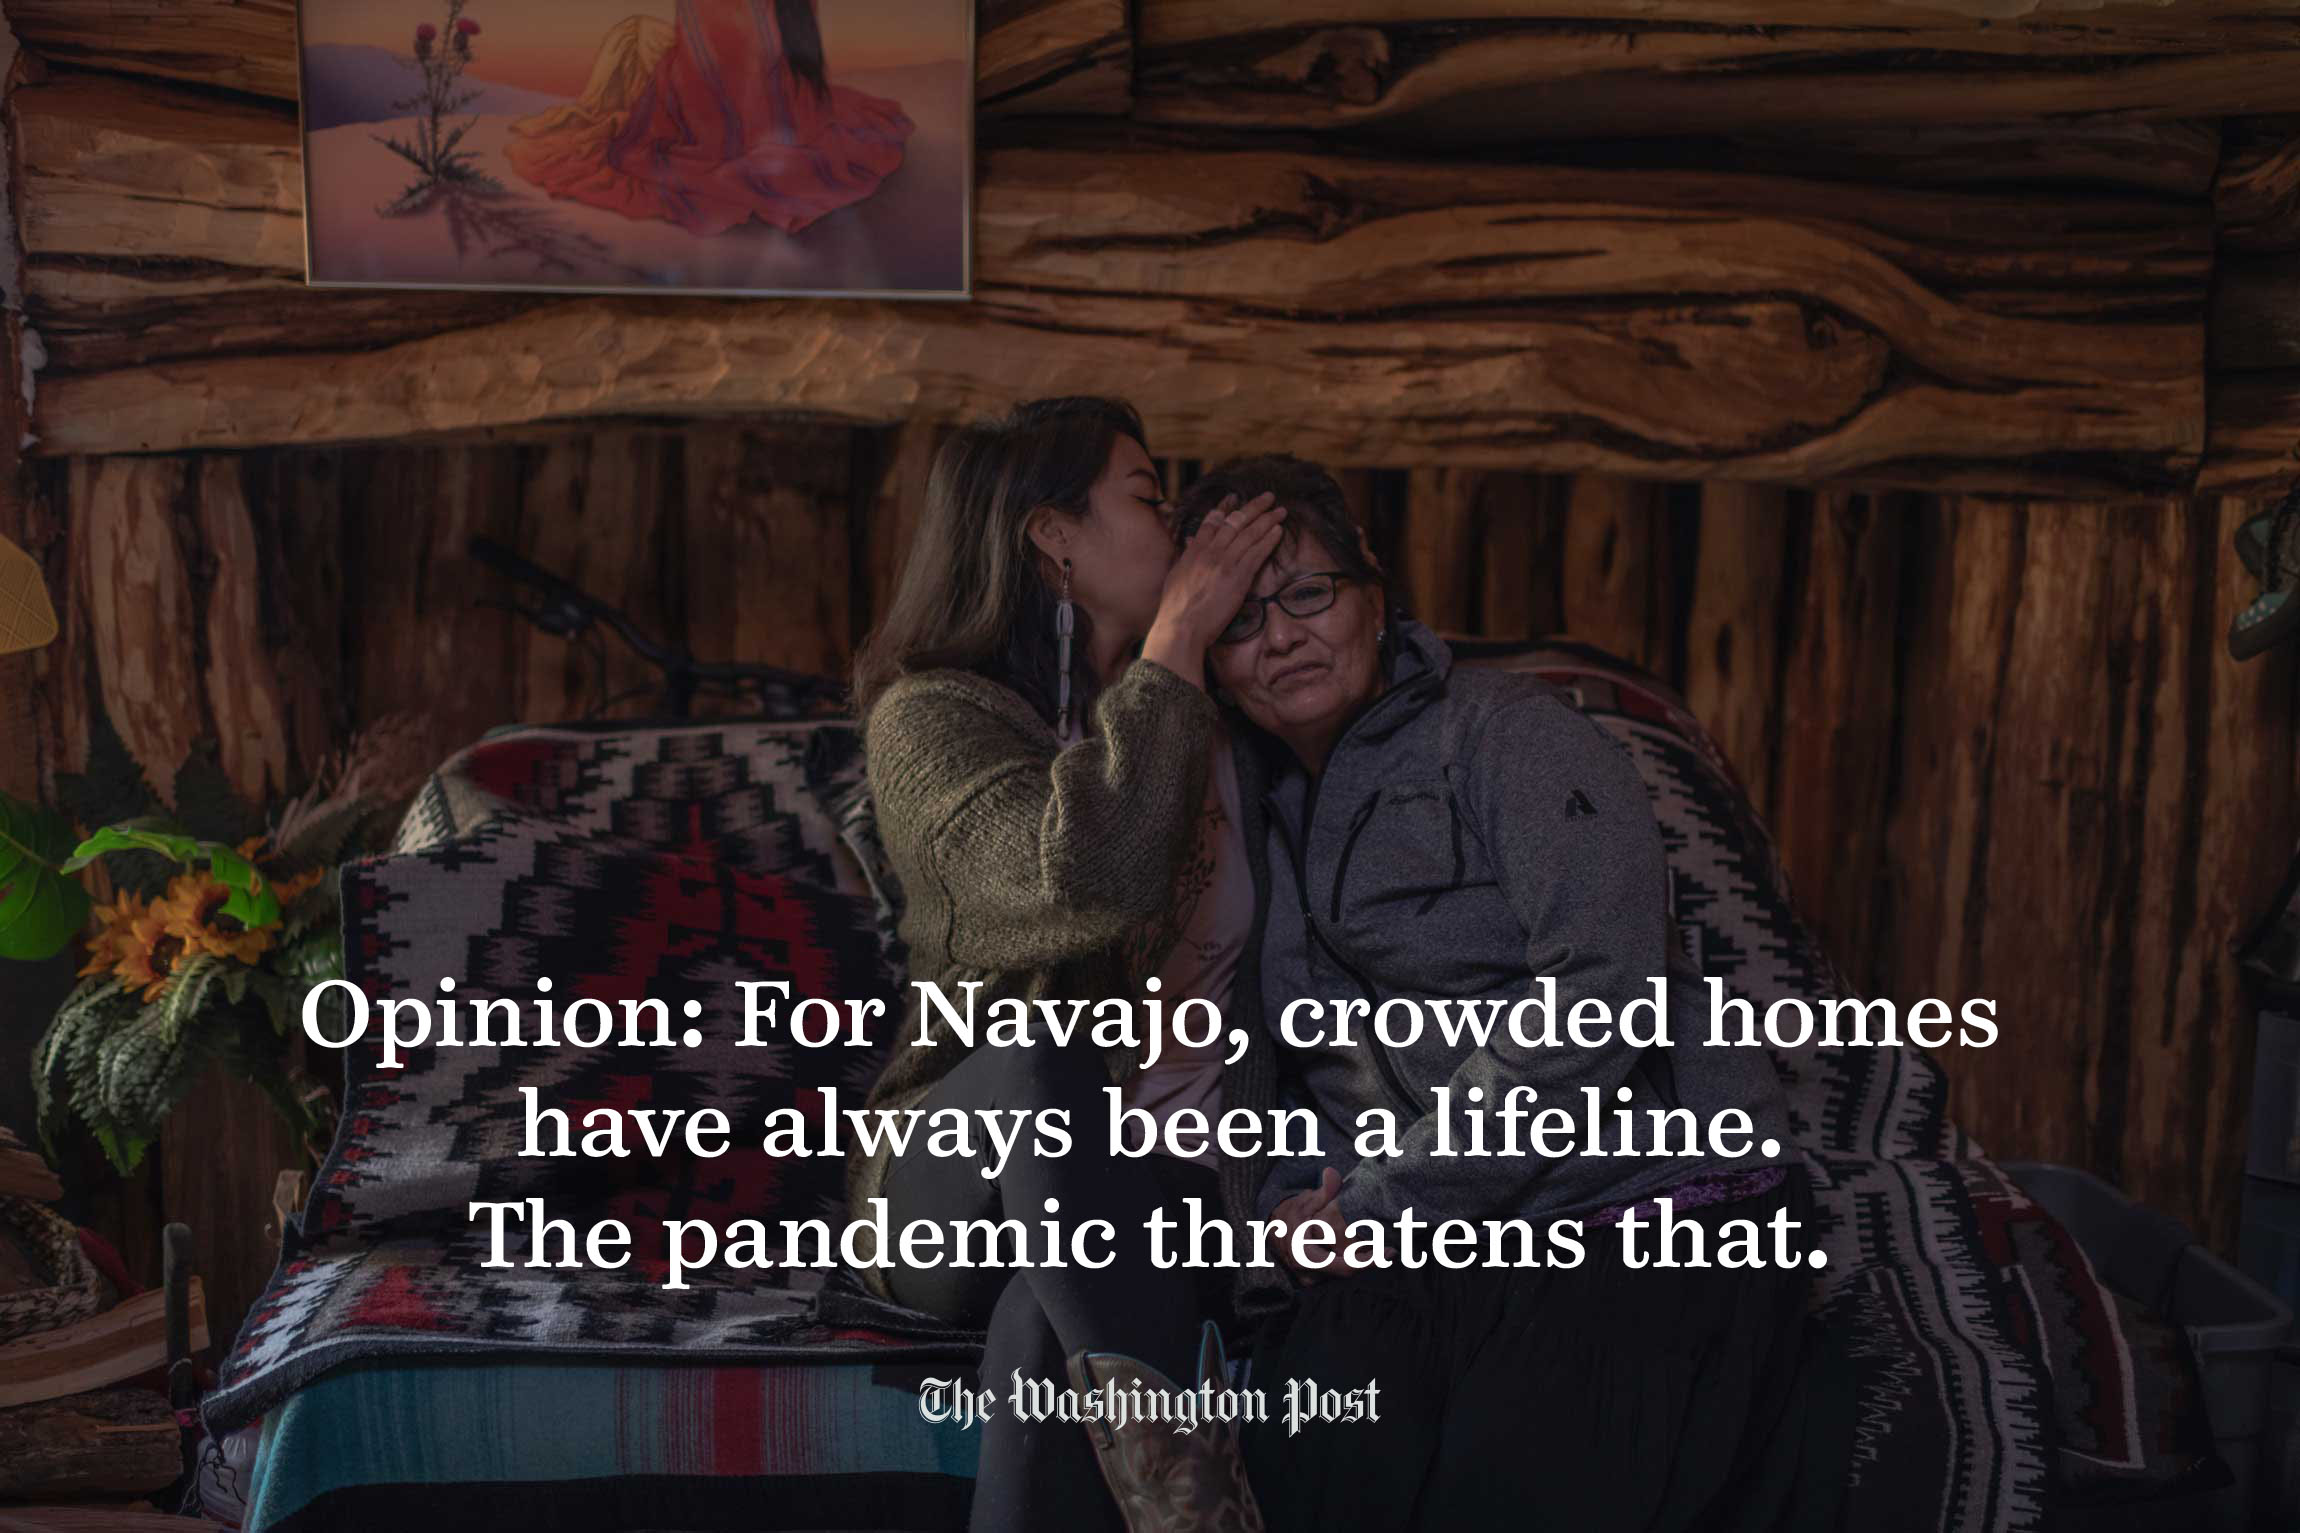 Opinion-For-Navajo-crowded-homes-have-always-been-a-lifeline-The-pandemic-threatens-that